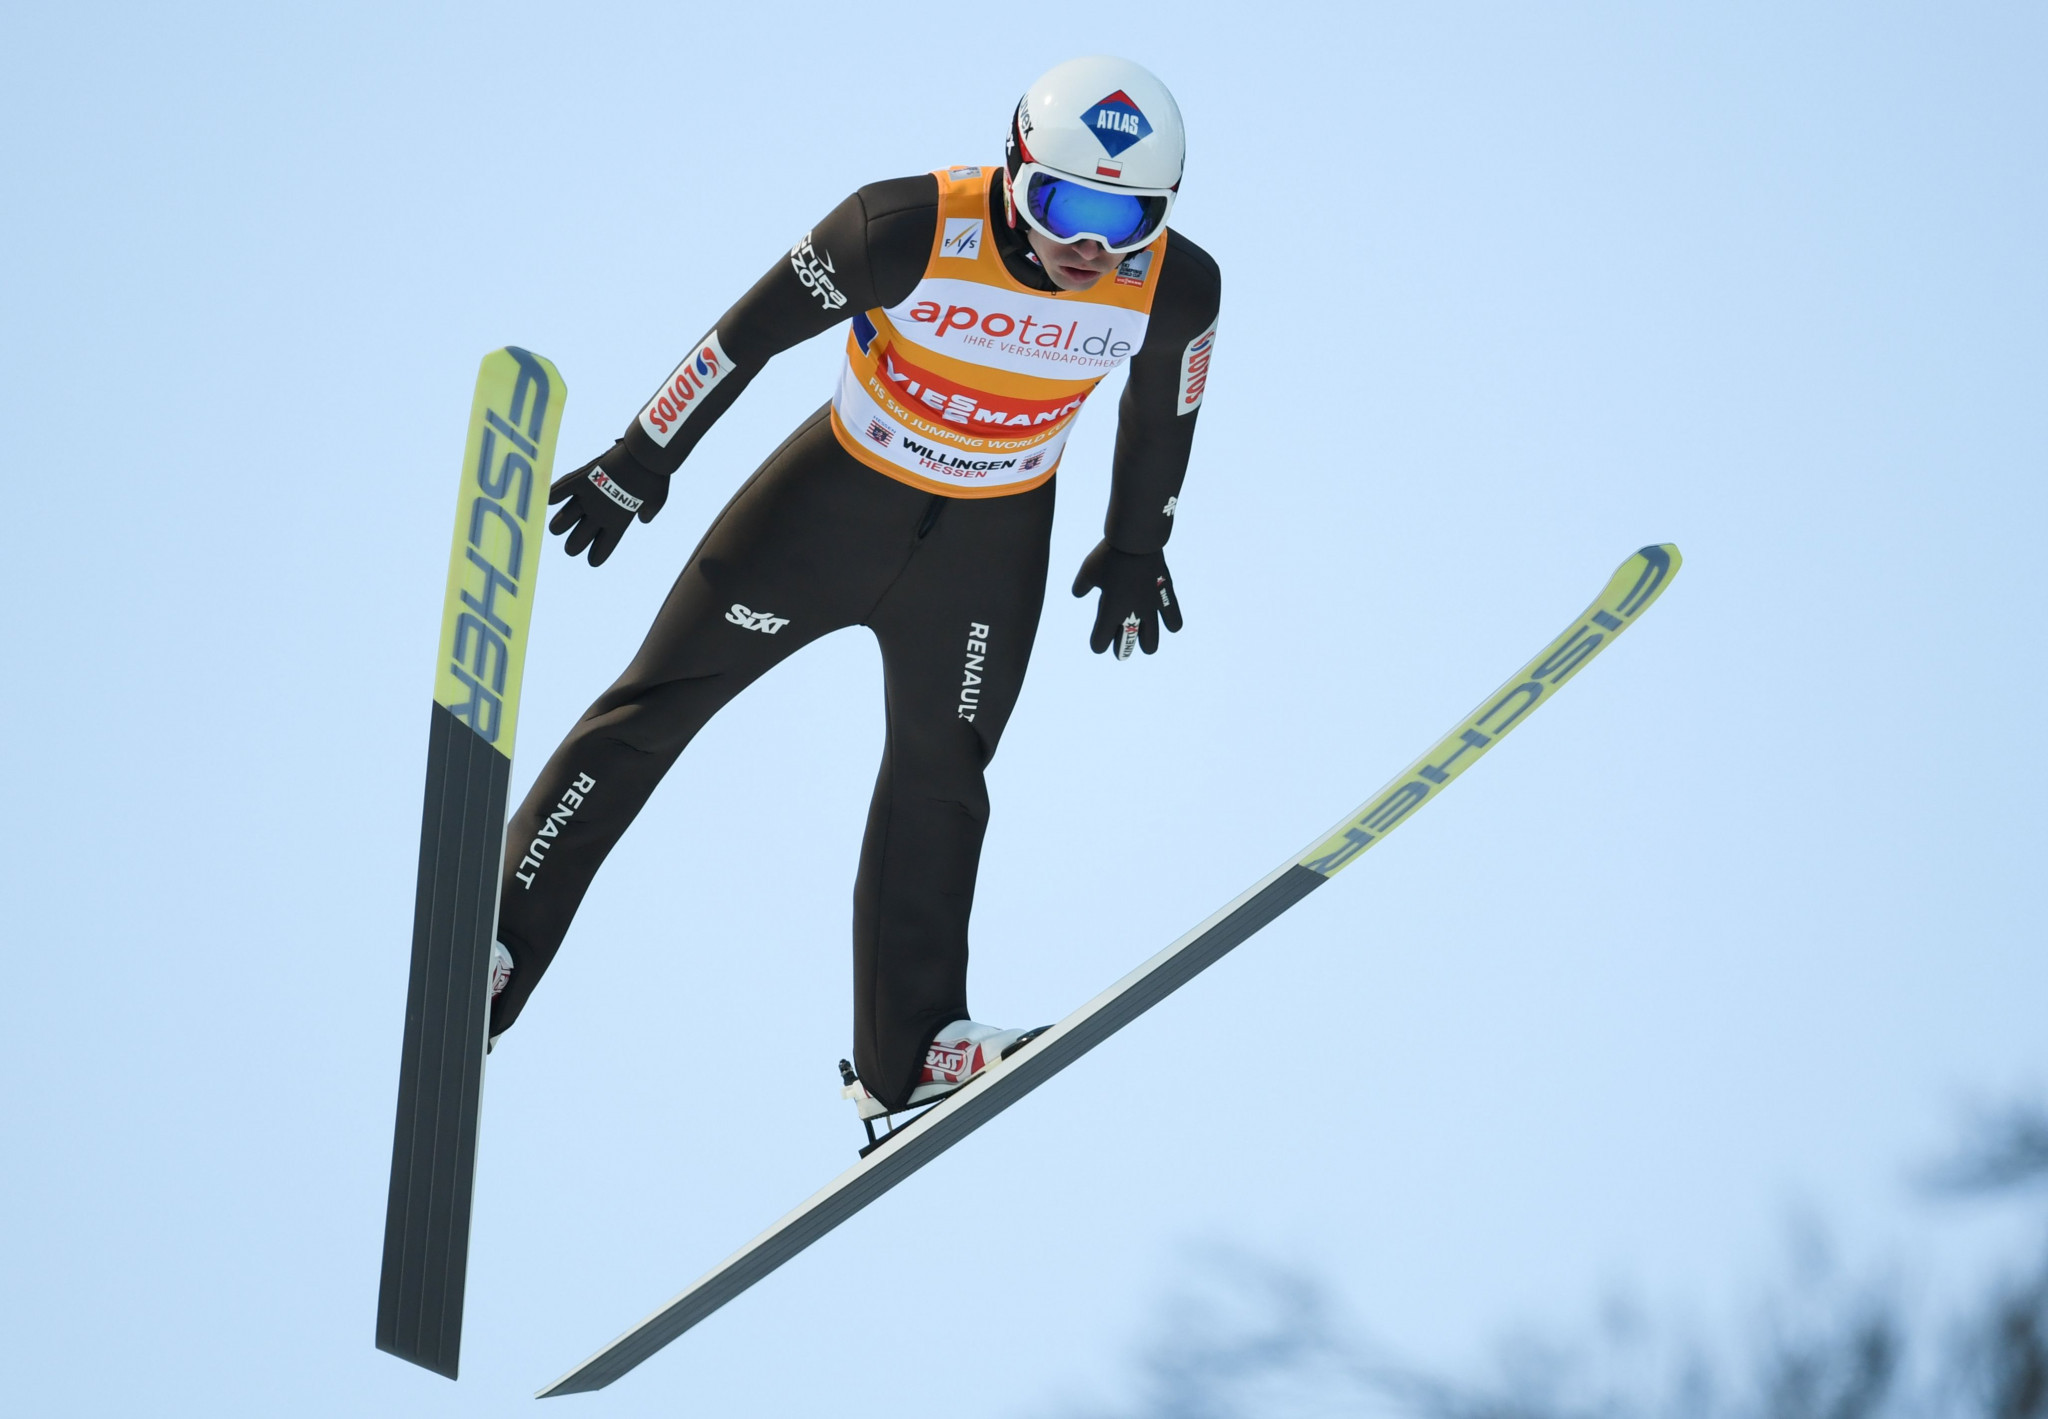 Poland triumph in team competition at FIS Ski Jumping World Cup in Wellingen